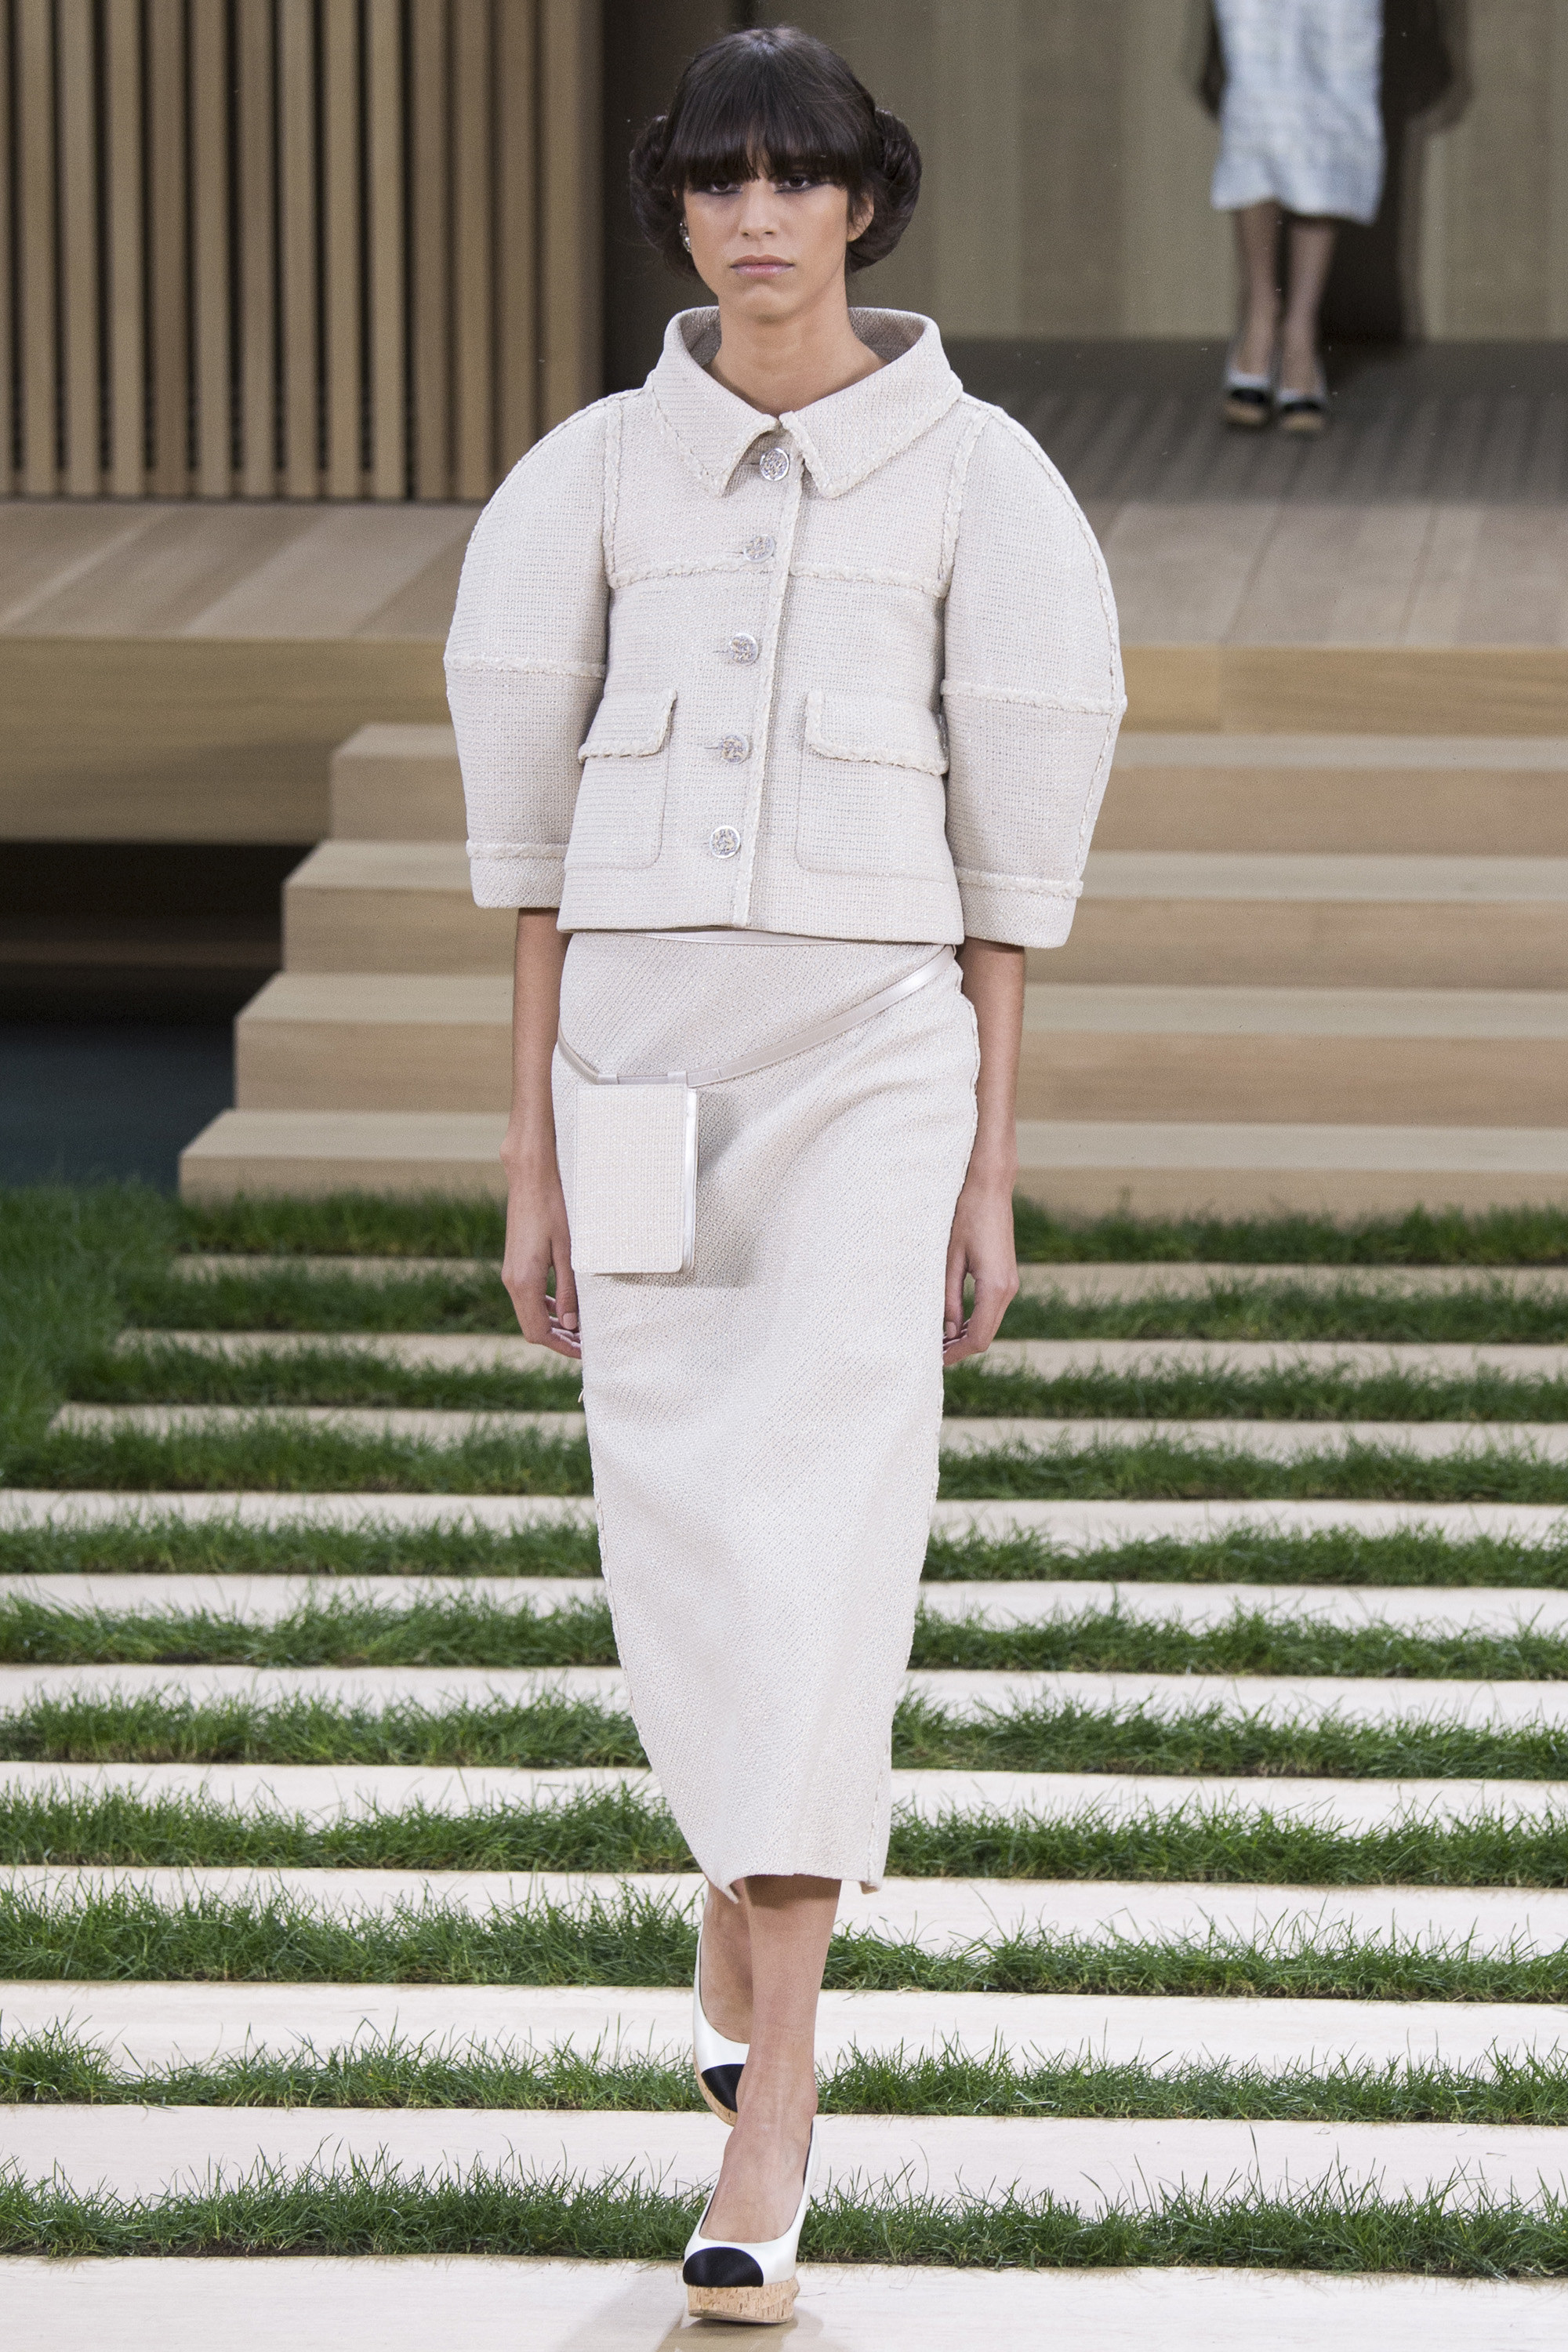 tilda-swinton-in-chanel-couture-at-the-hail-caesar-66th-berlin-film-premiere-opening-ceremony